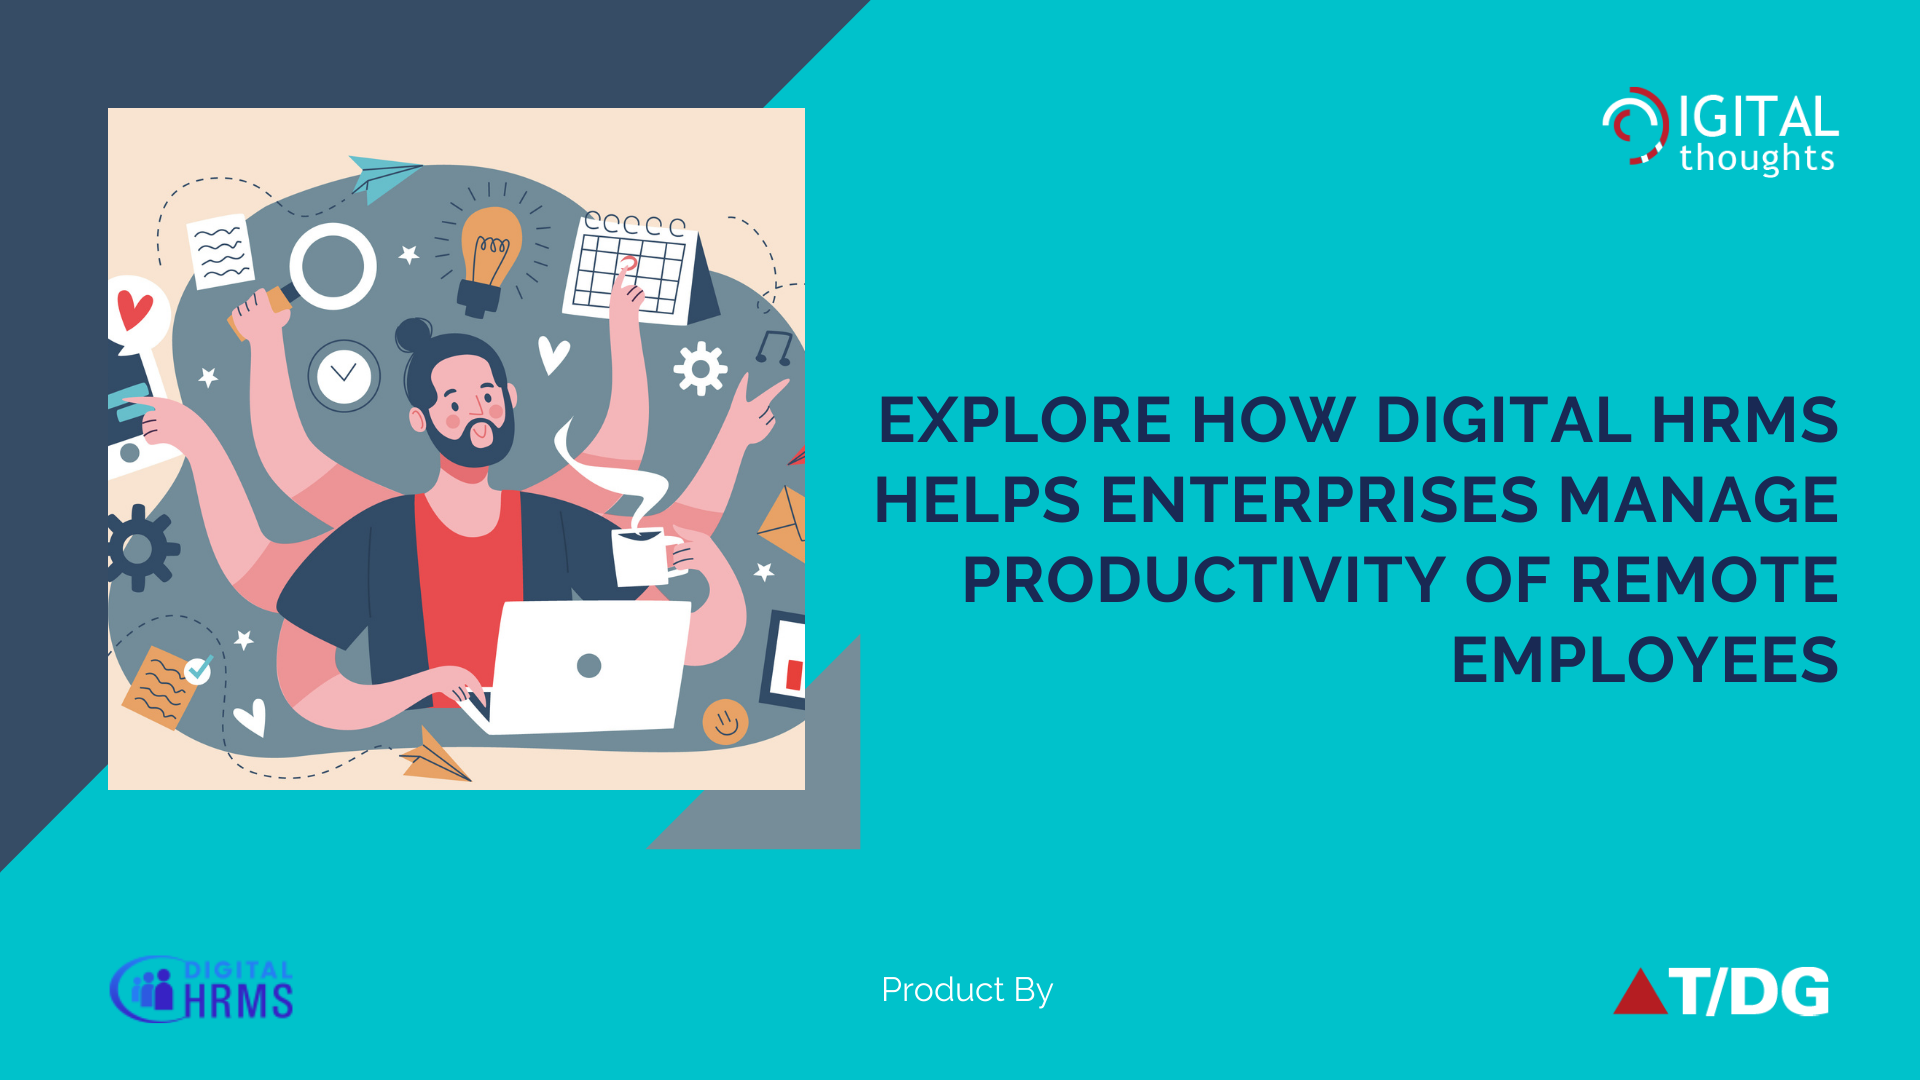 Explore How Digital HRMS Helps Enterprises Manage Productivity of Remote Employees